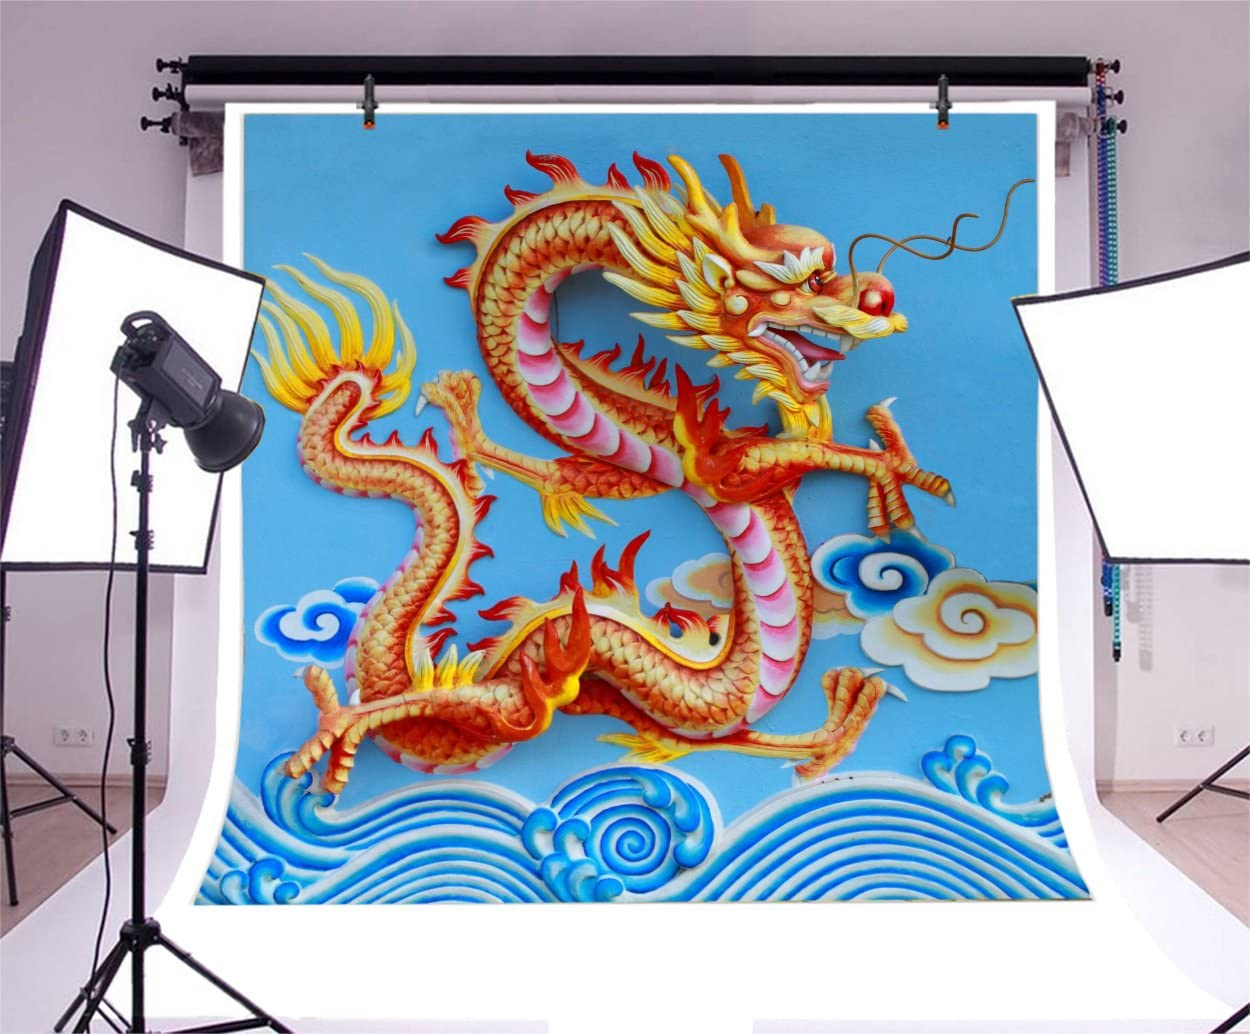 5x5FT Vinyl Backdrop Photographer,Dragon,Japanese Dragons Mythical Background for Baby Birthday Party Wedding Studio Props Photography